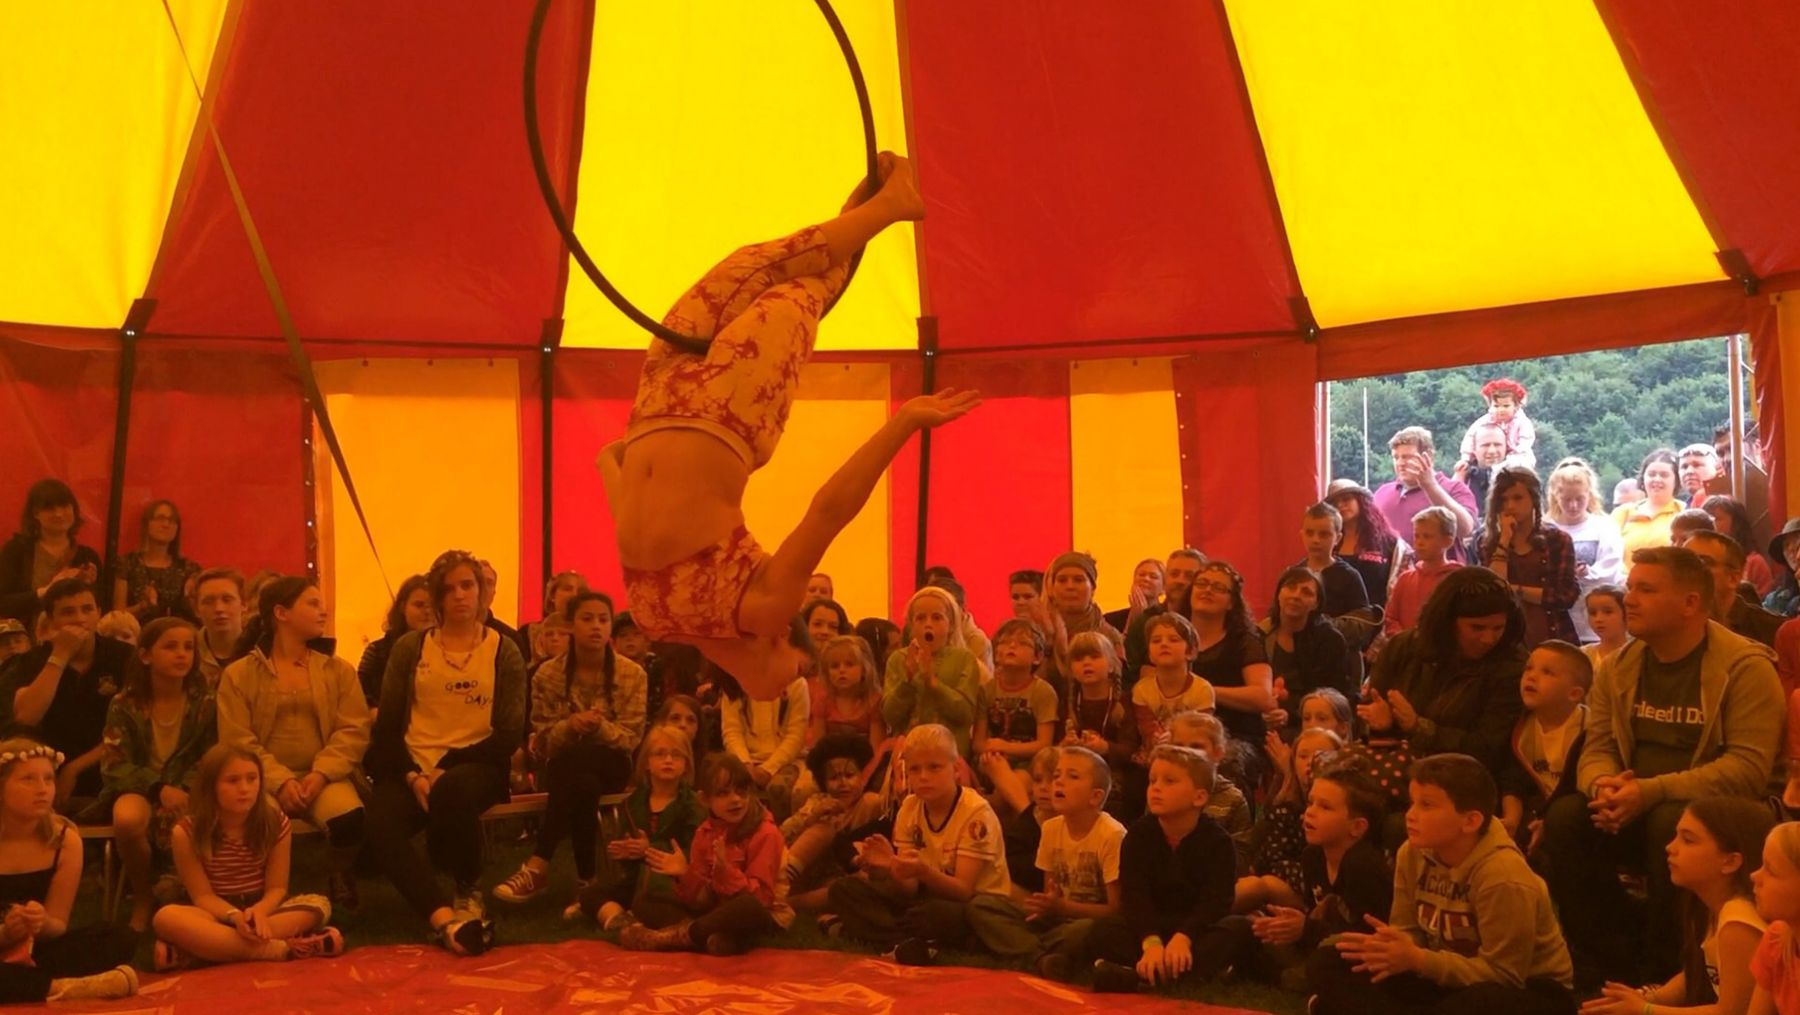 Circus tent at Corbrifge Festival